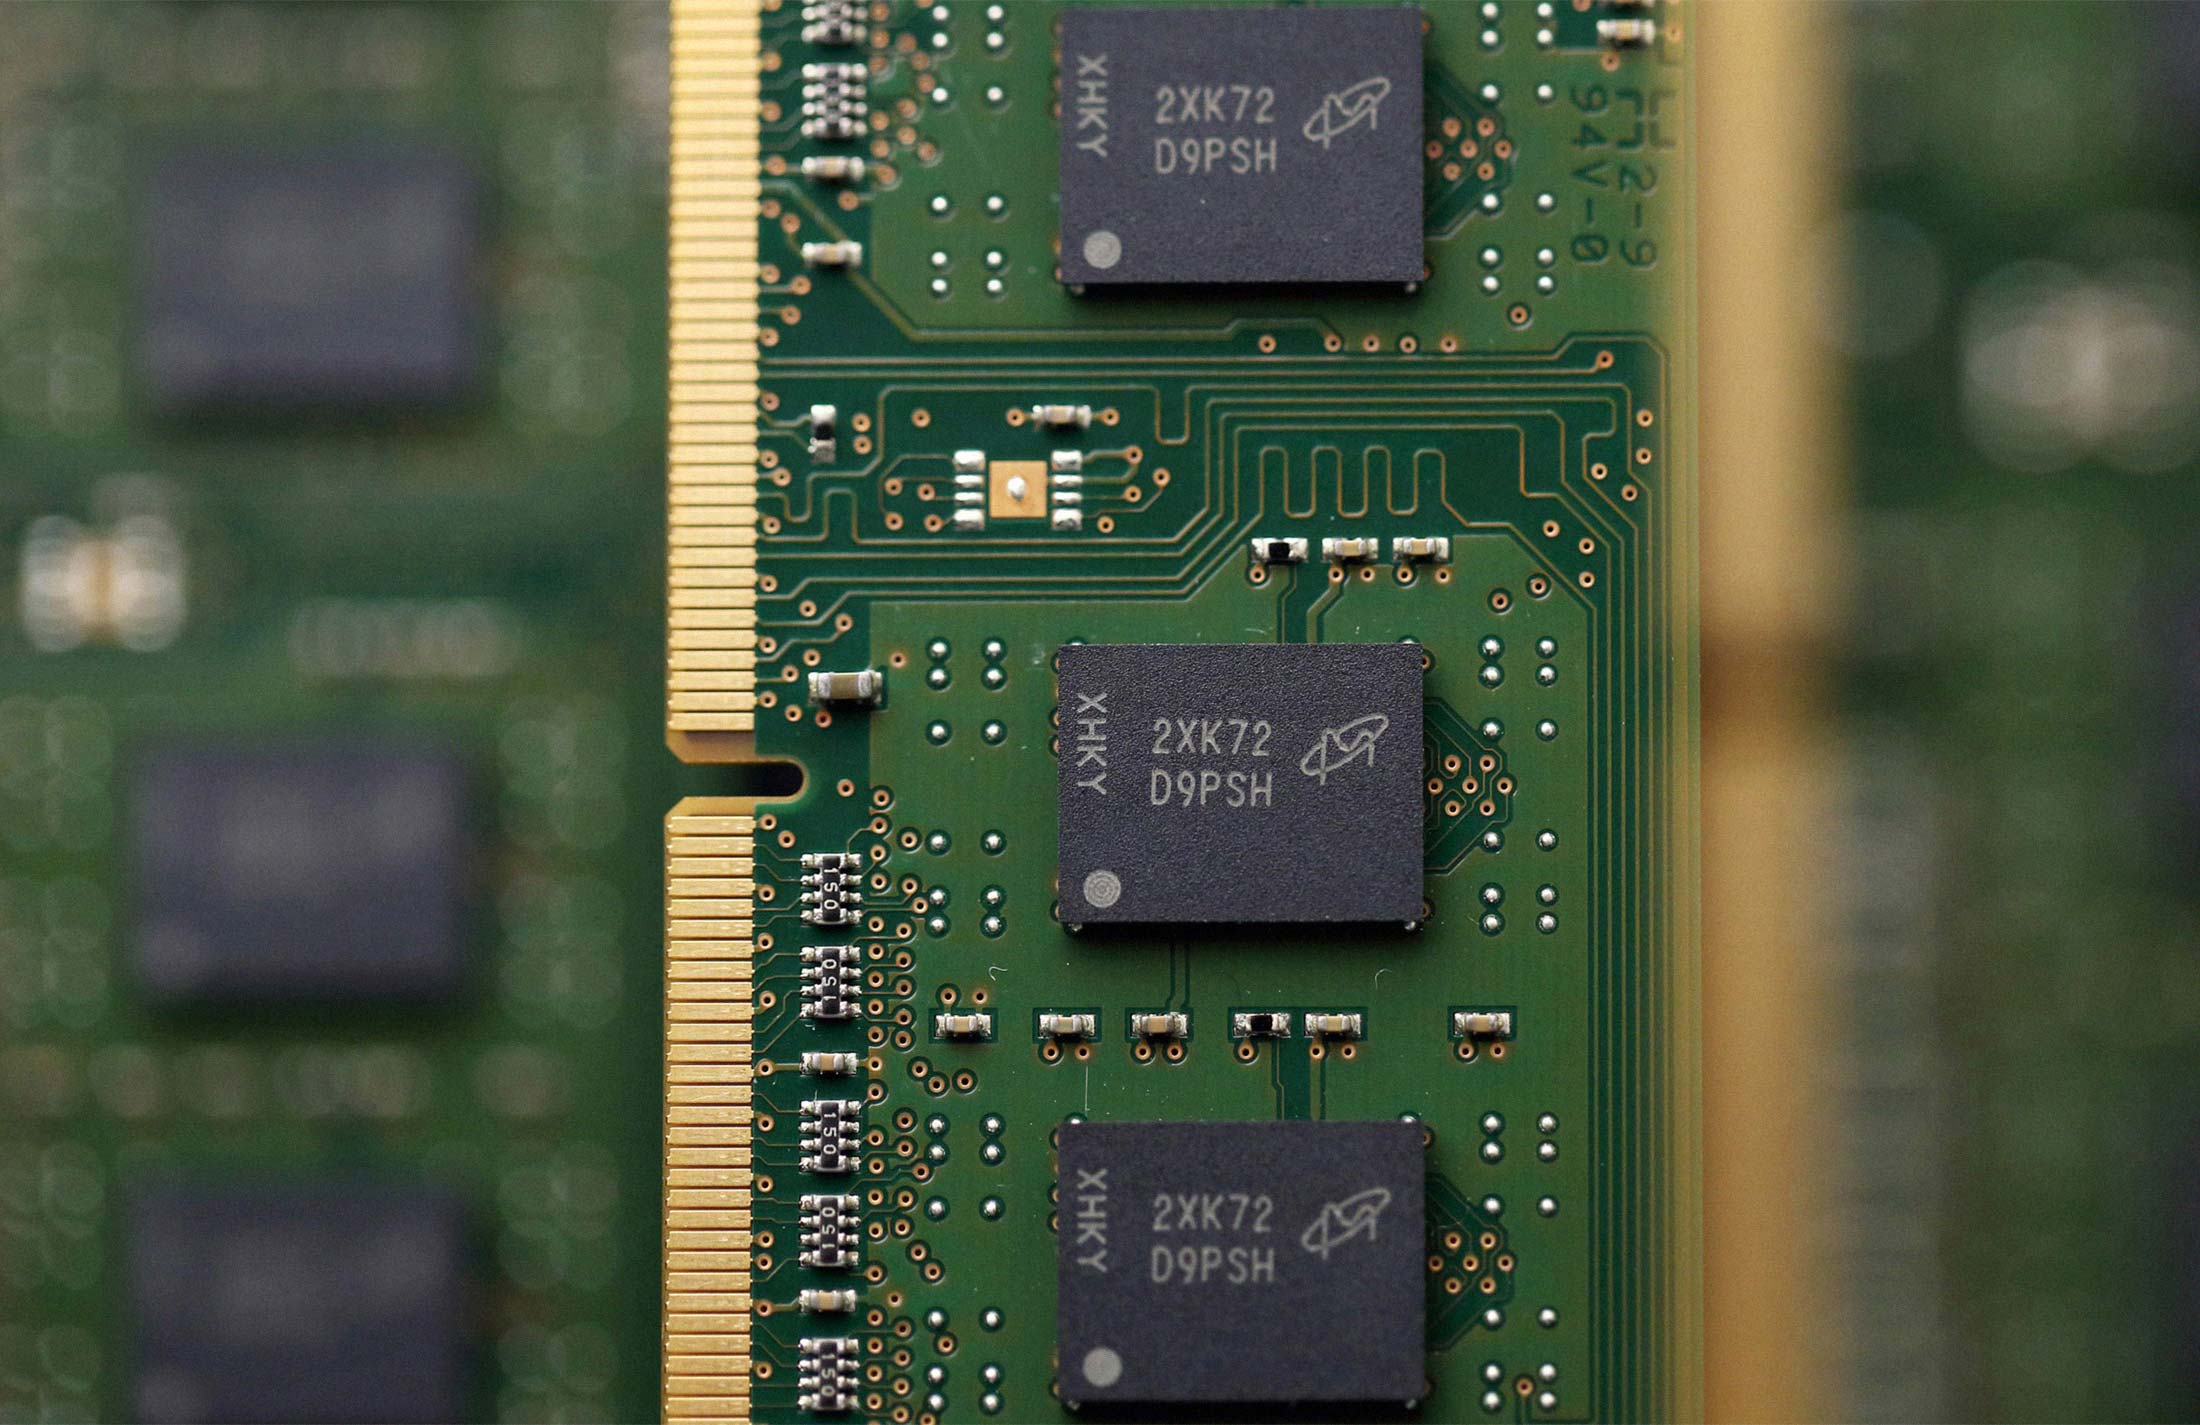 Chips Growth Looks Set To Stall Bloomberg This Article Is About The Electronic Component For Physical